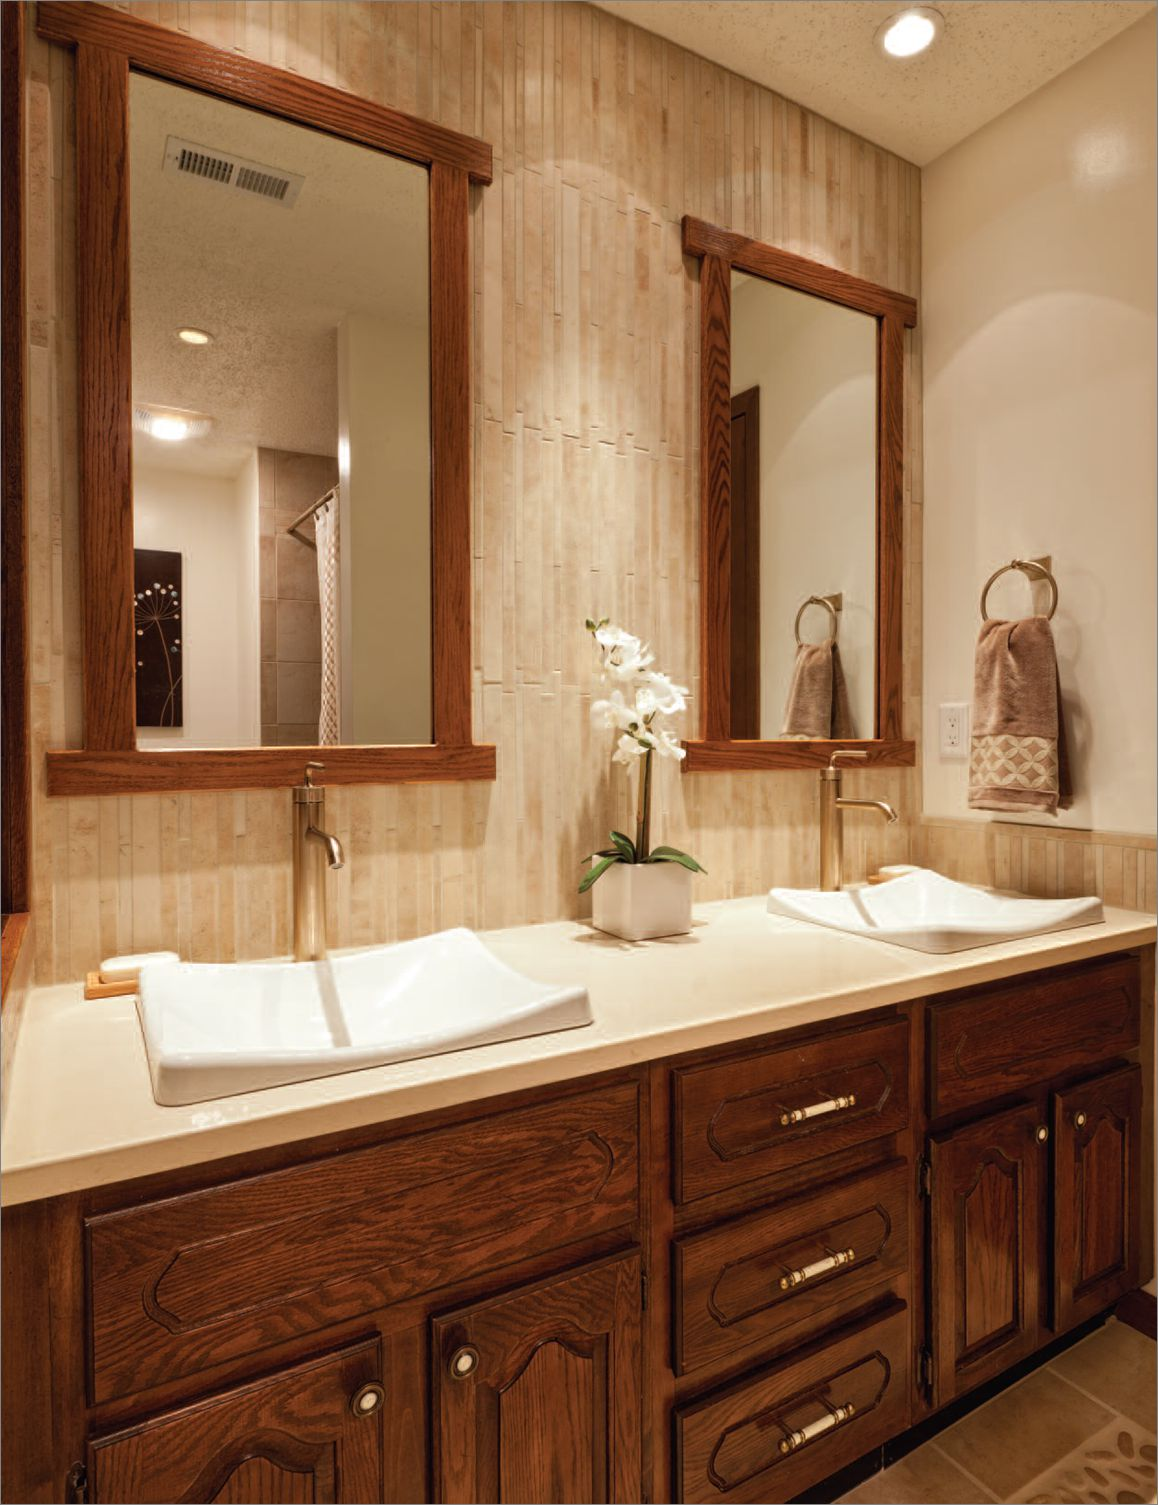 Ravishing Wooden Bathroom Backsplash Ideas also Wooden Cabinet and Mirror Frame